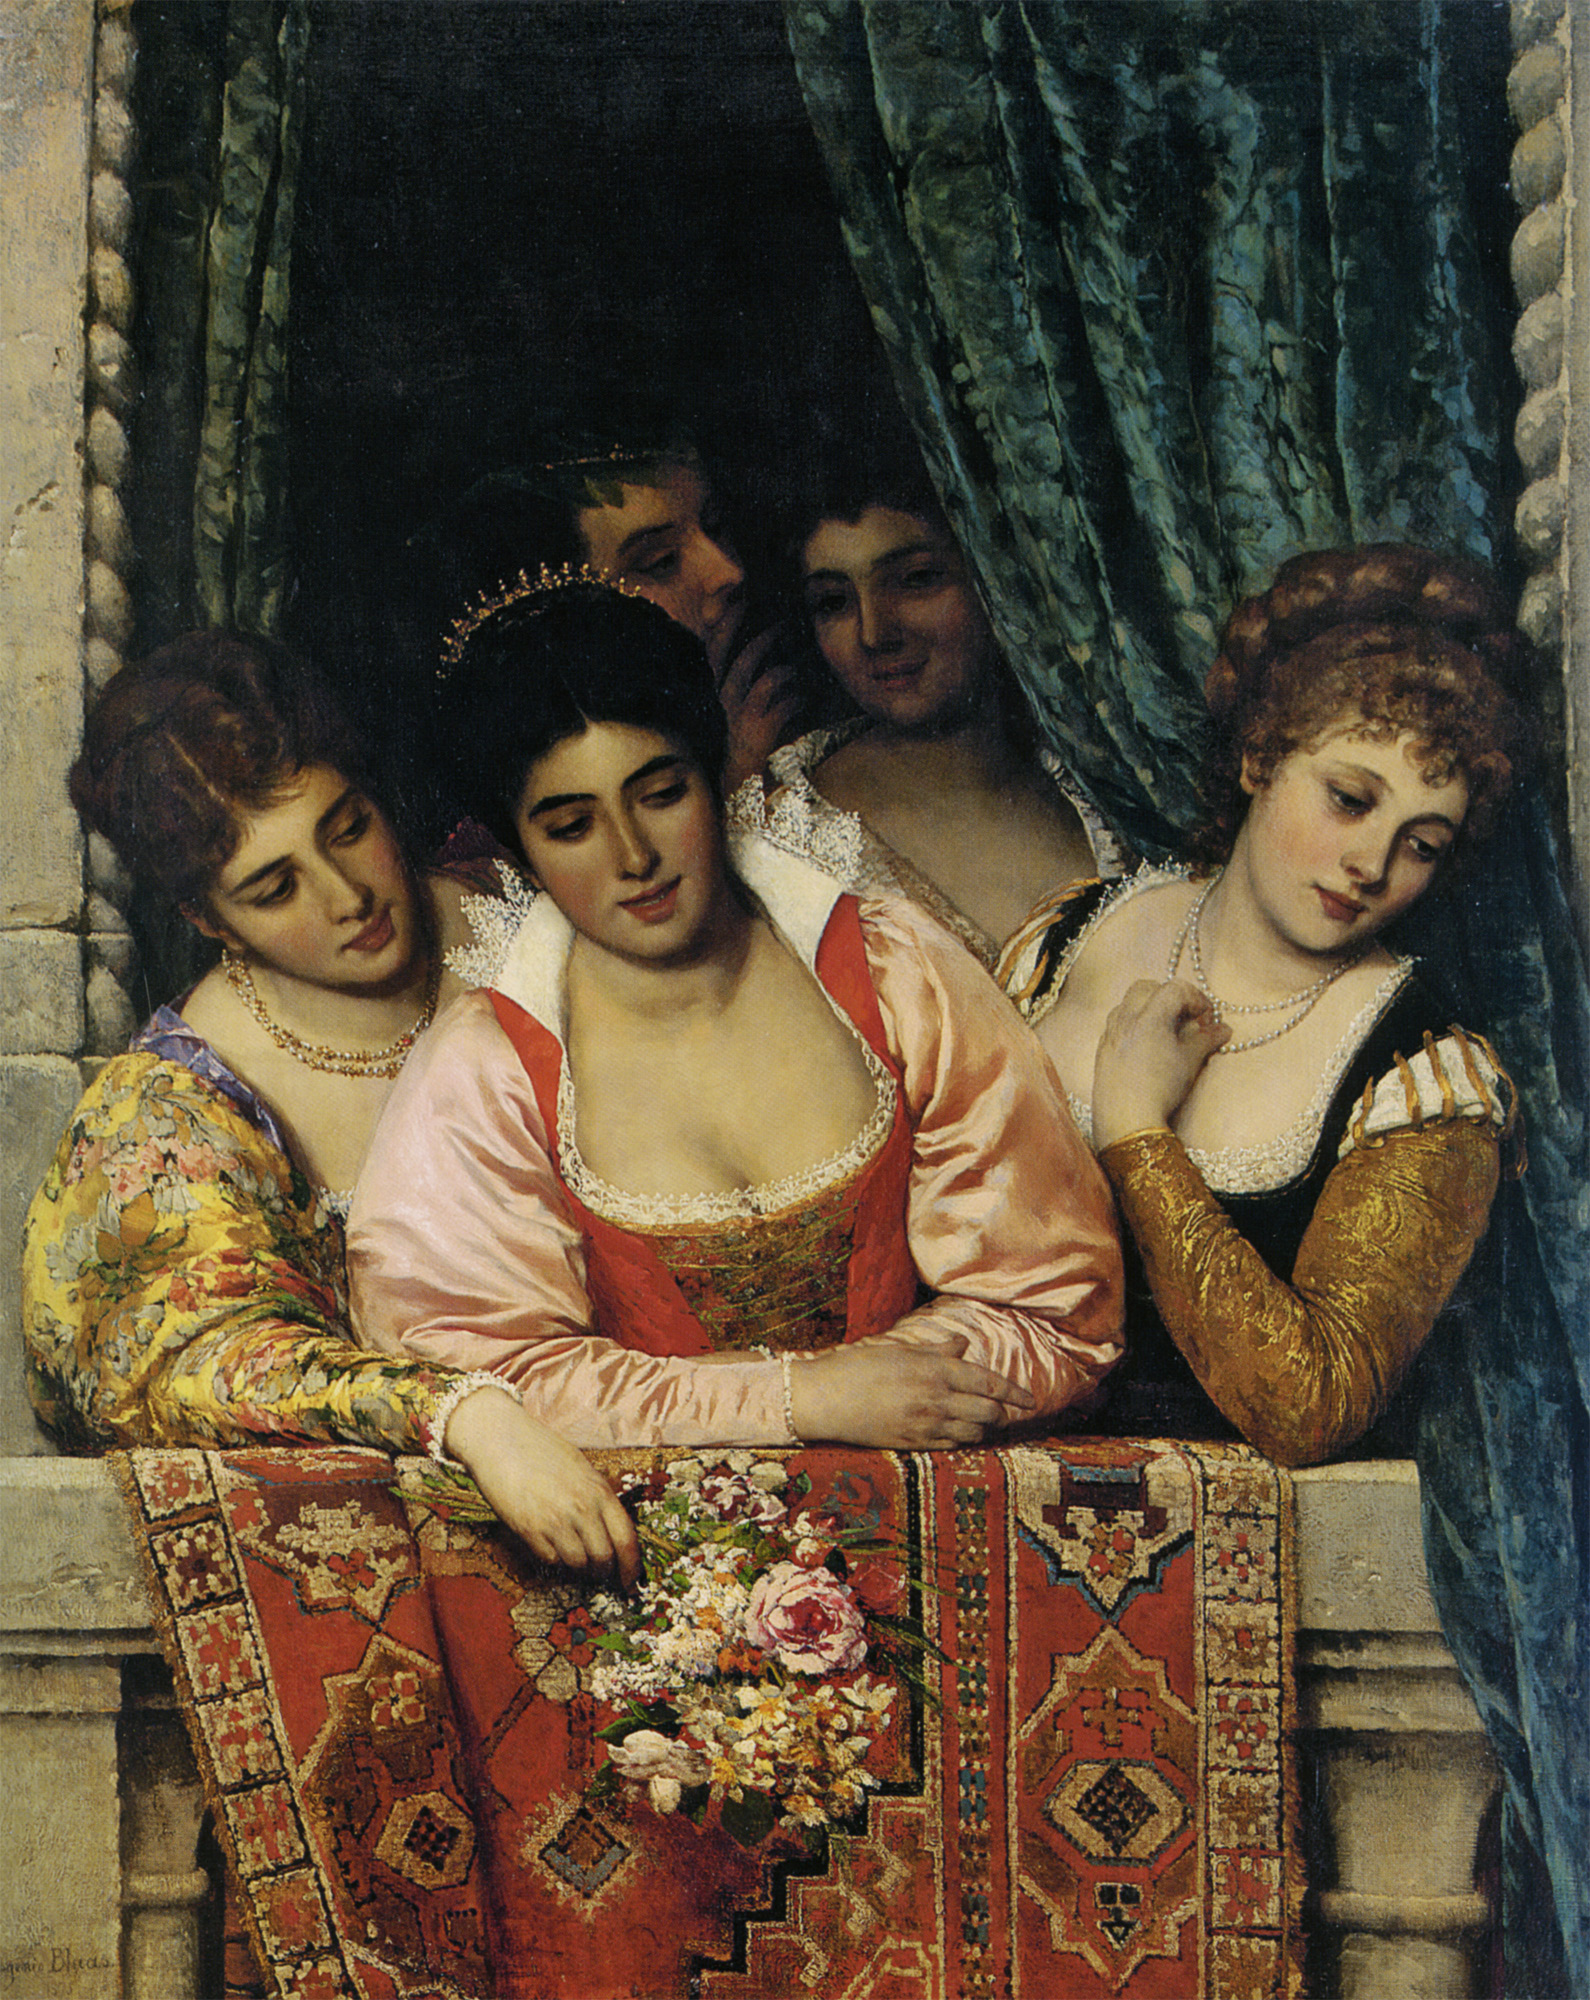 Blaaas_Eugen_Von_Venetian_Ladies_on_A_Balcony_1875